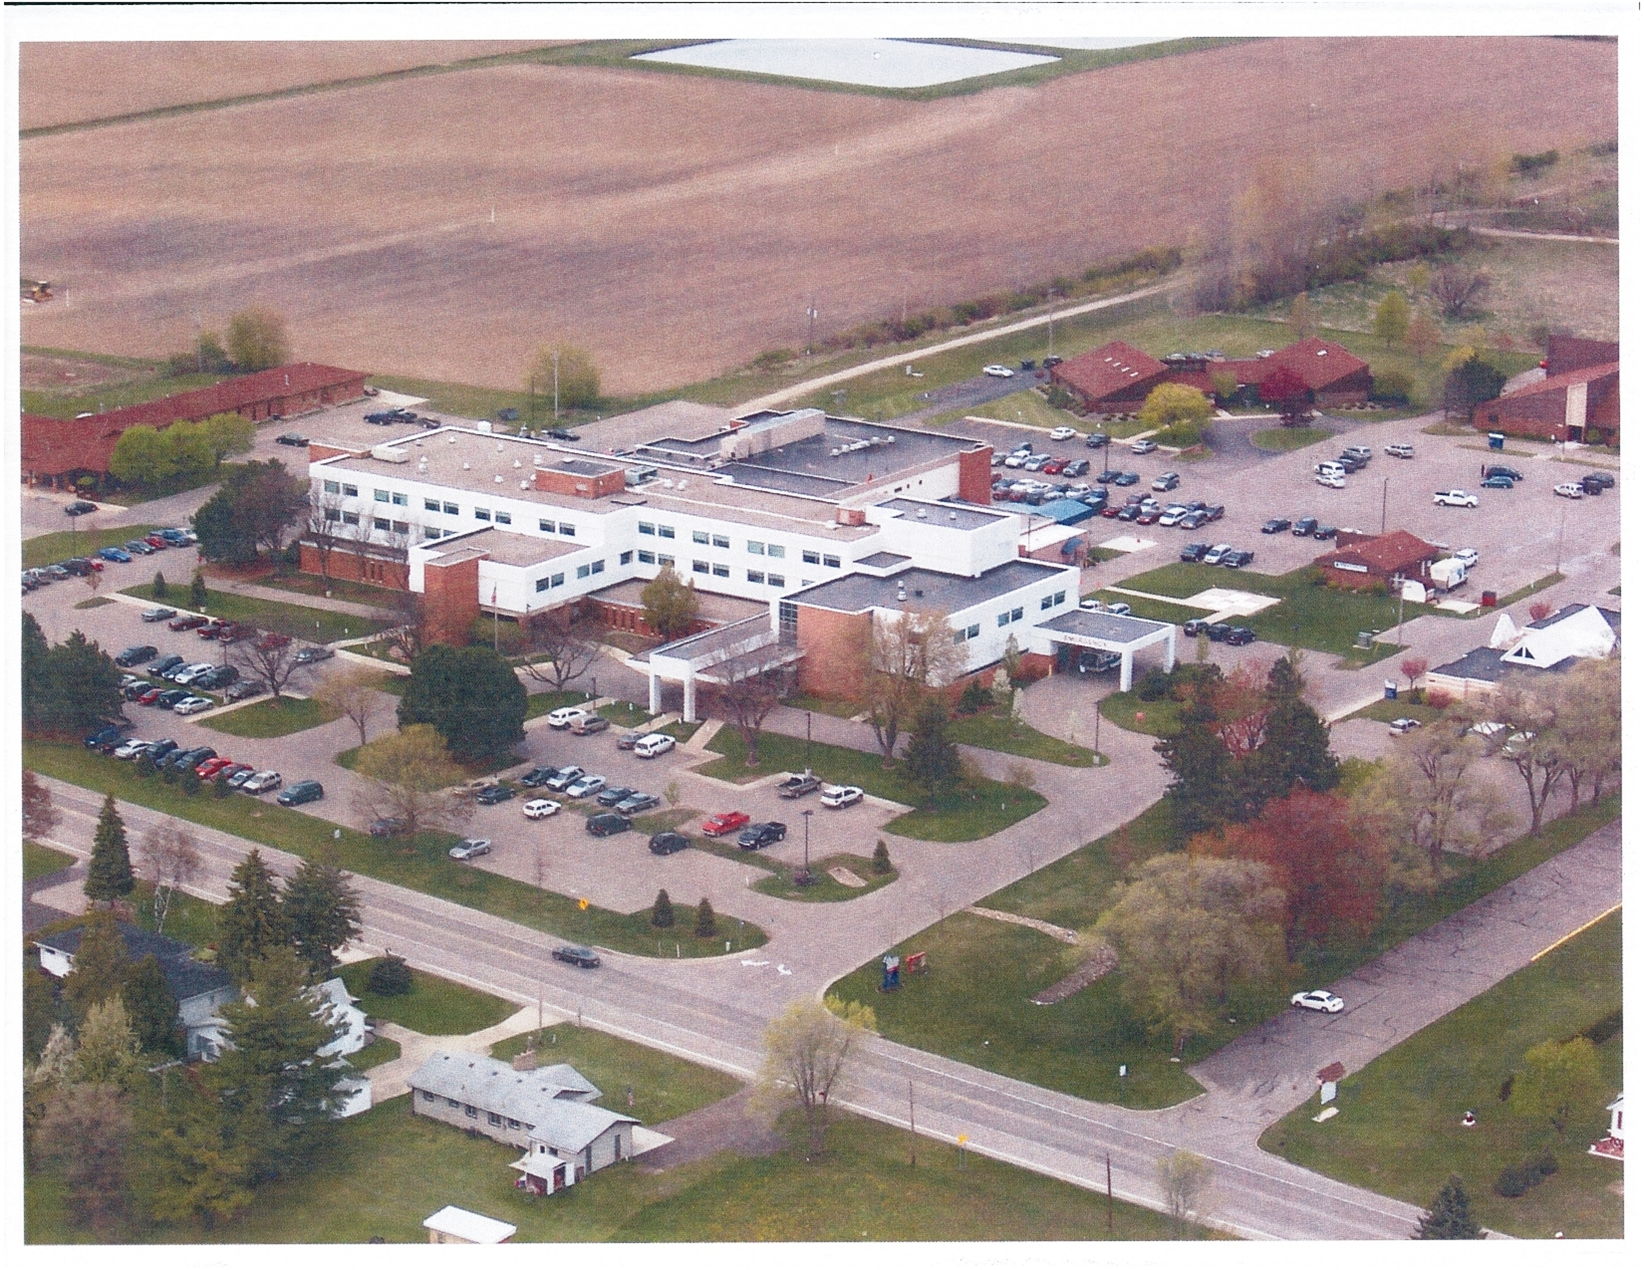 Huron Medical Center Overview Photo